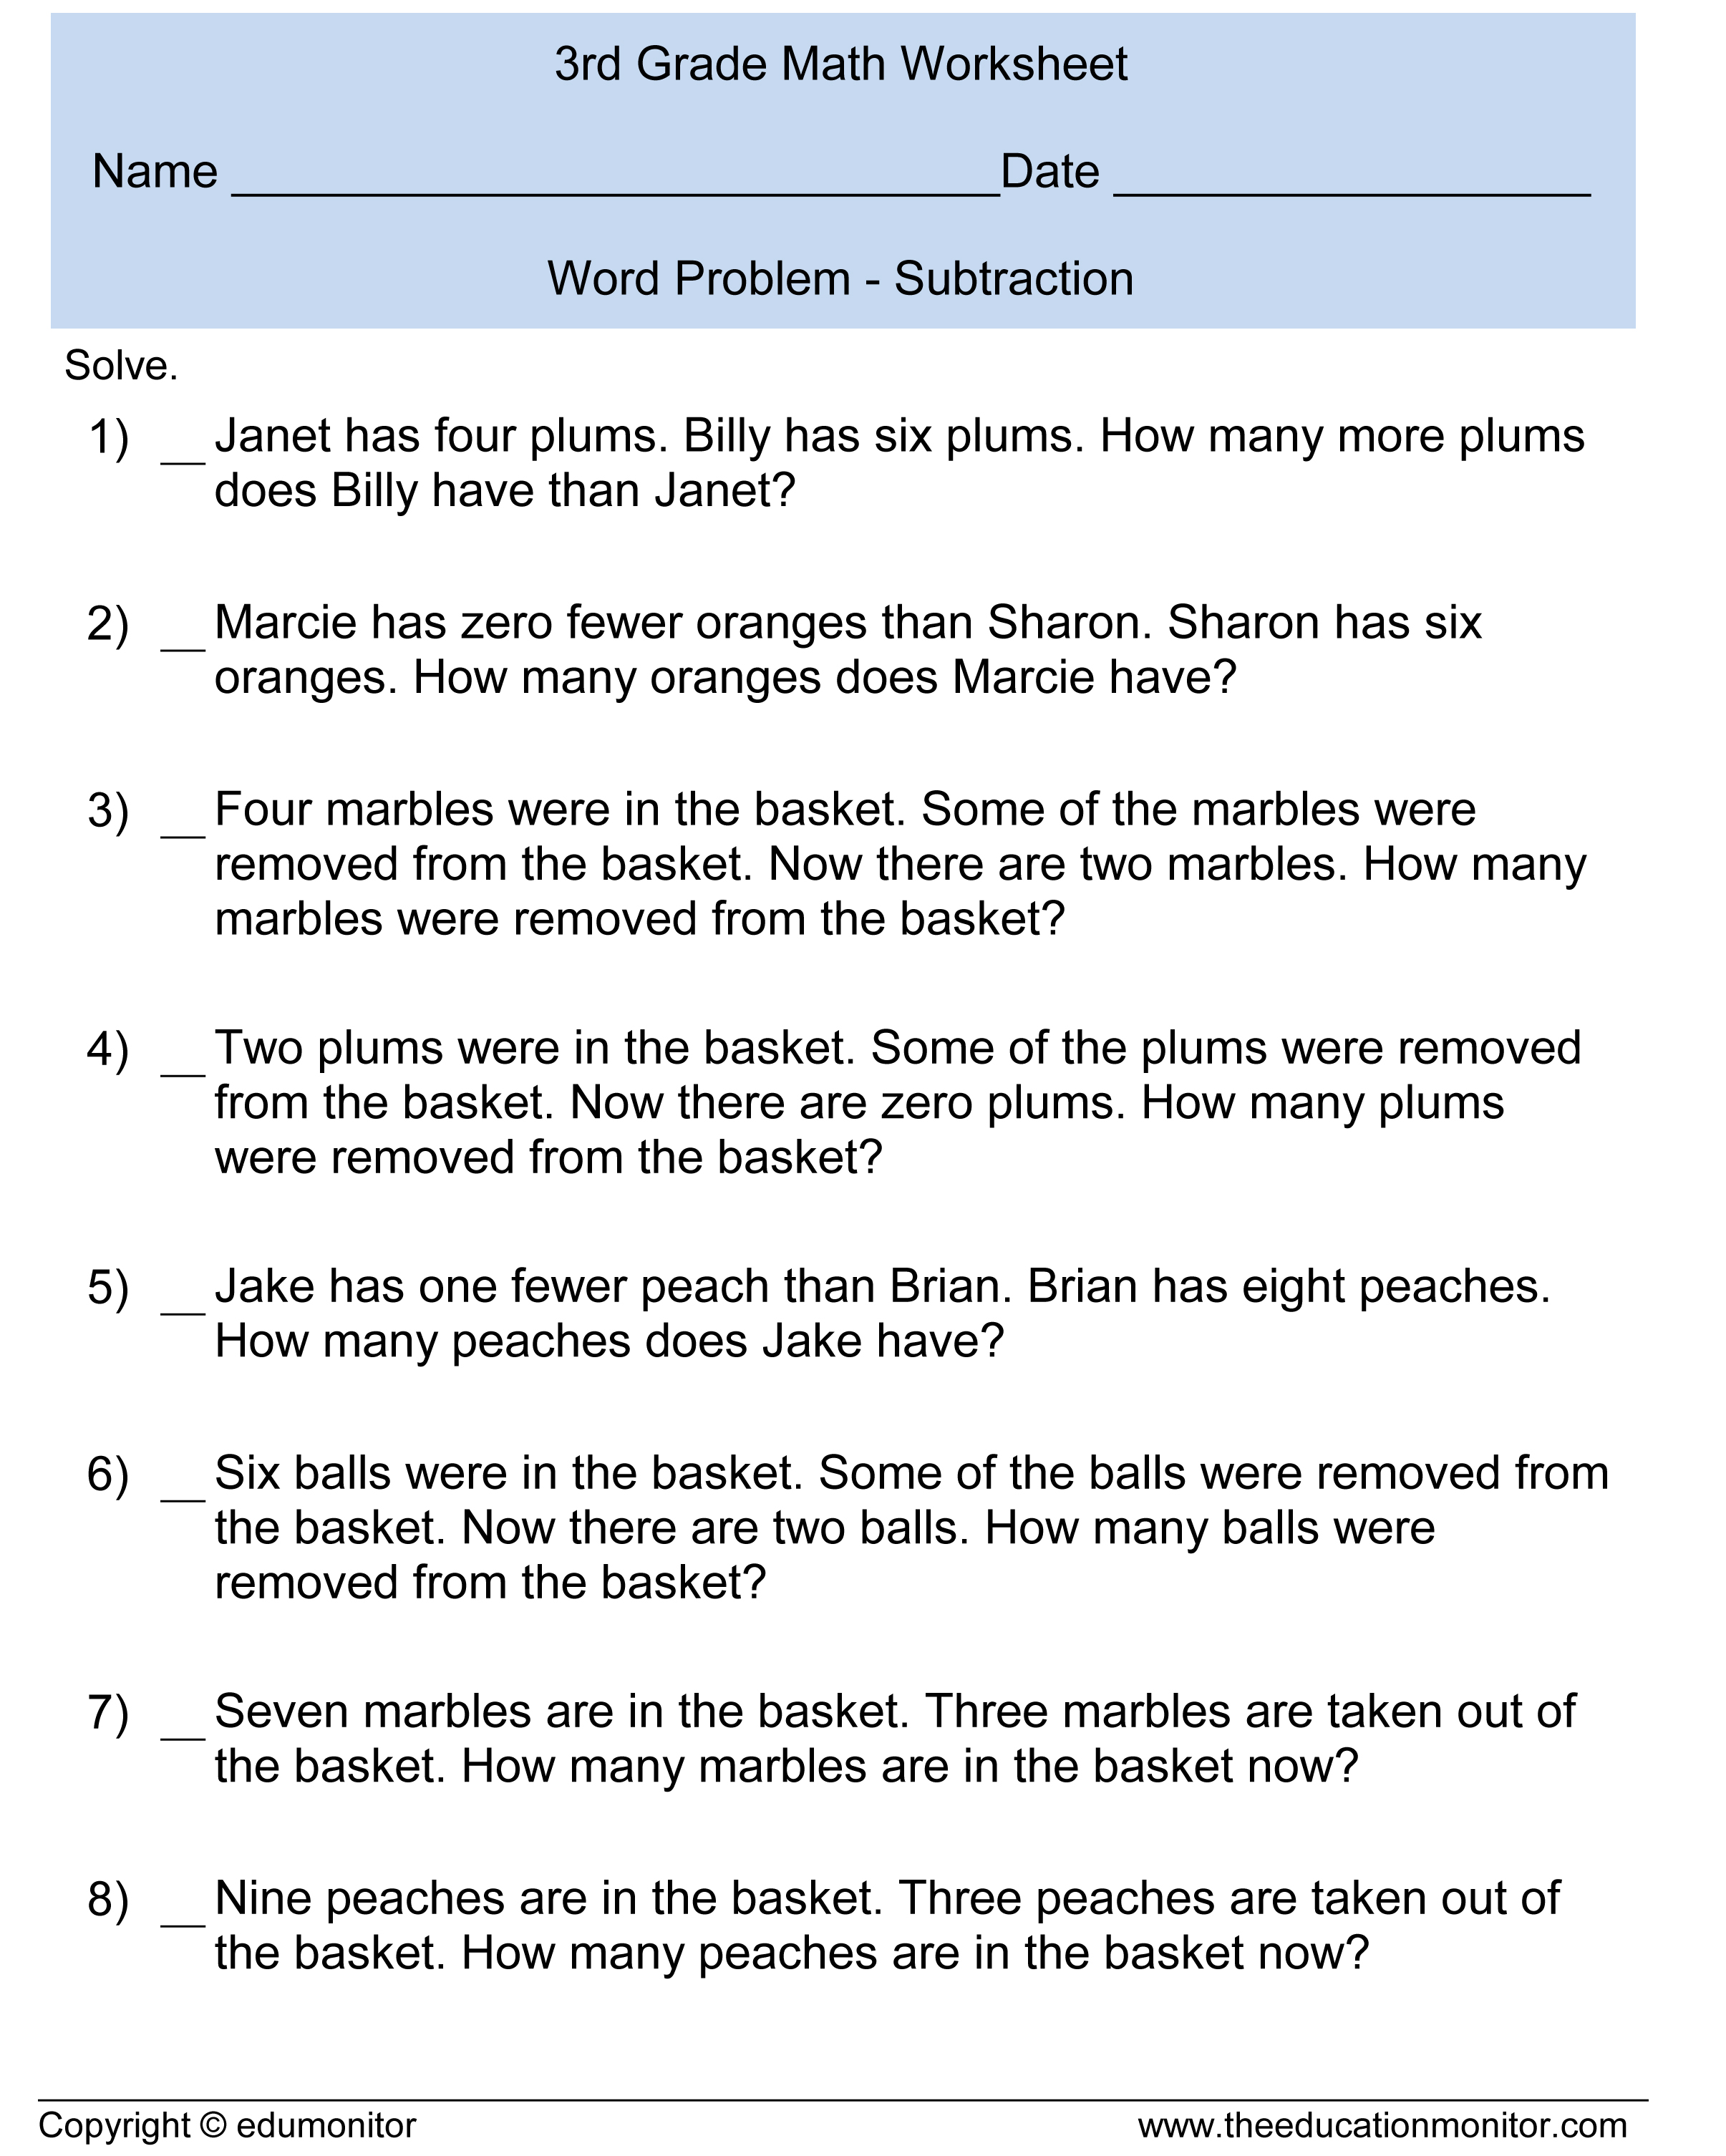 math worksheet : problem solving worksheets for 3rd graders  worksheets on study  : Multiplication Word Problem Worksheets Grade 3